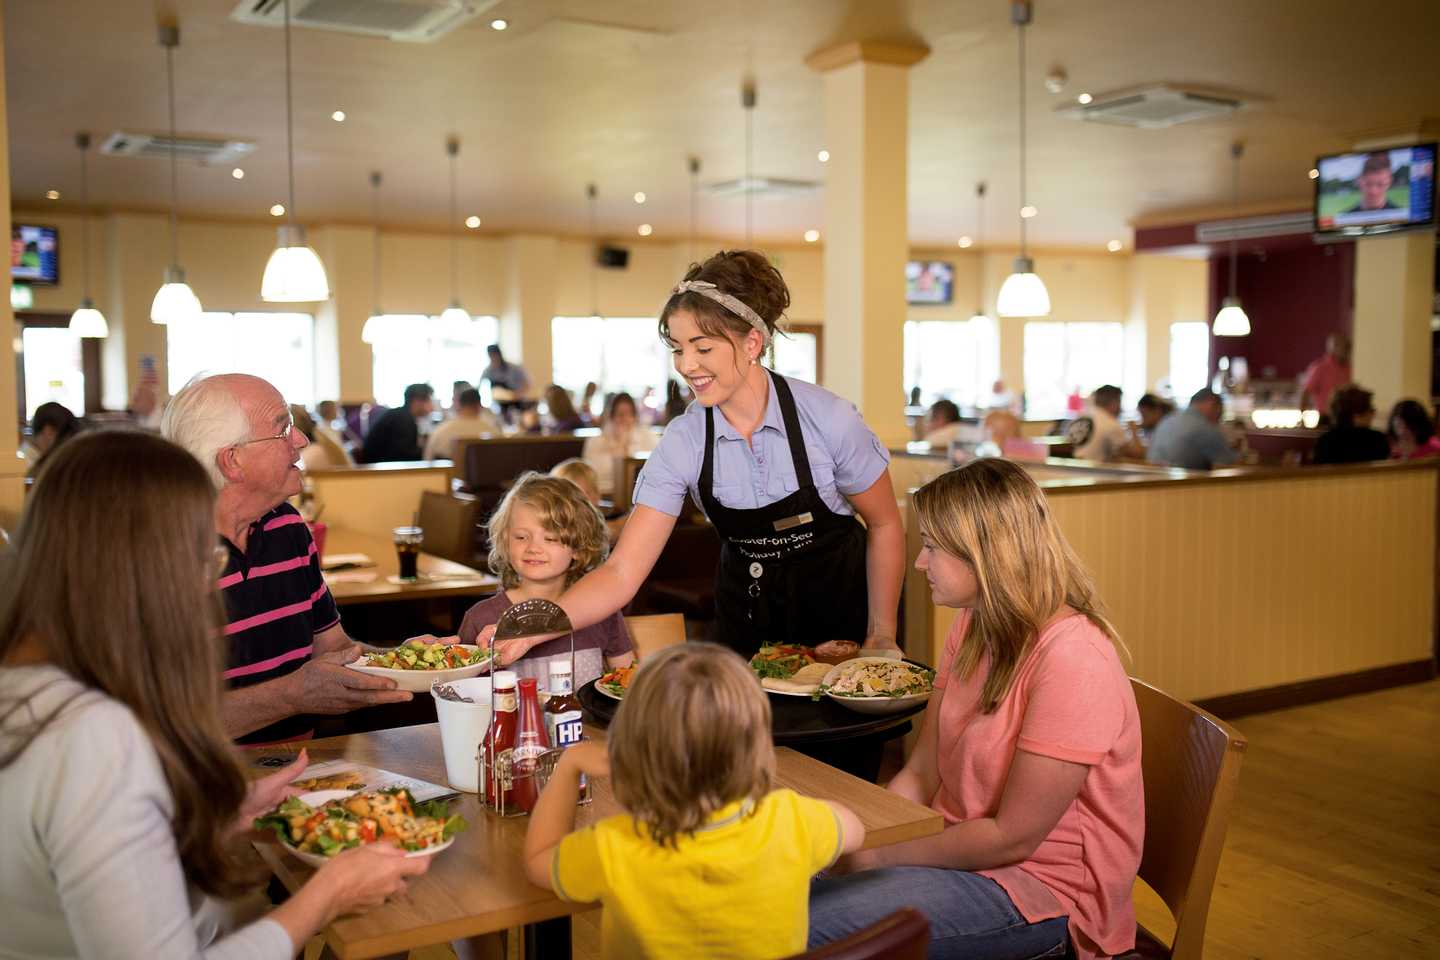 Family enjoying a meal at the Mash and Barrel bar and restaurant